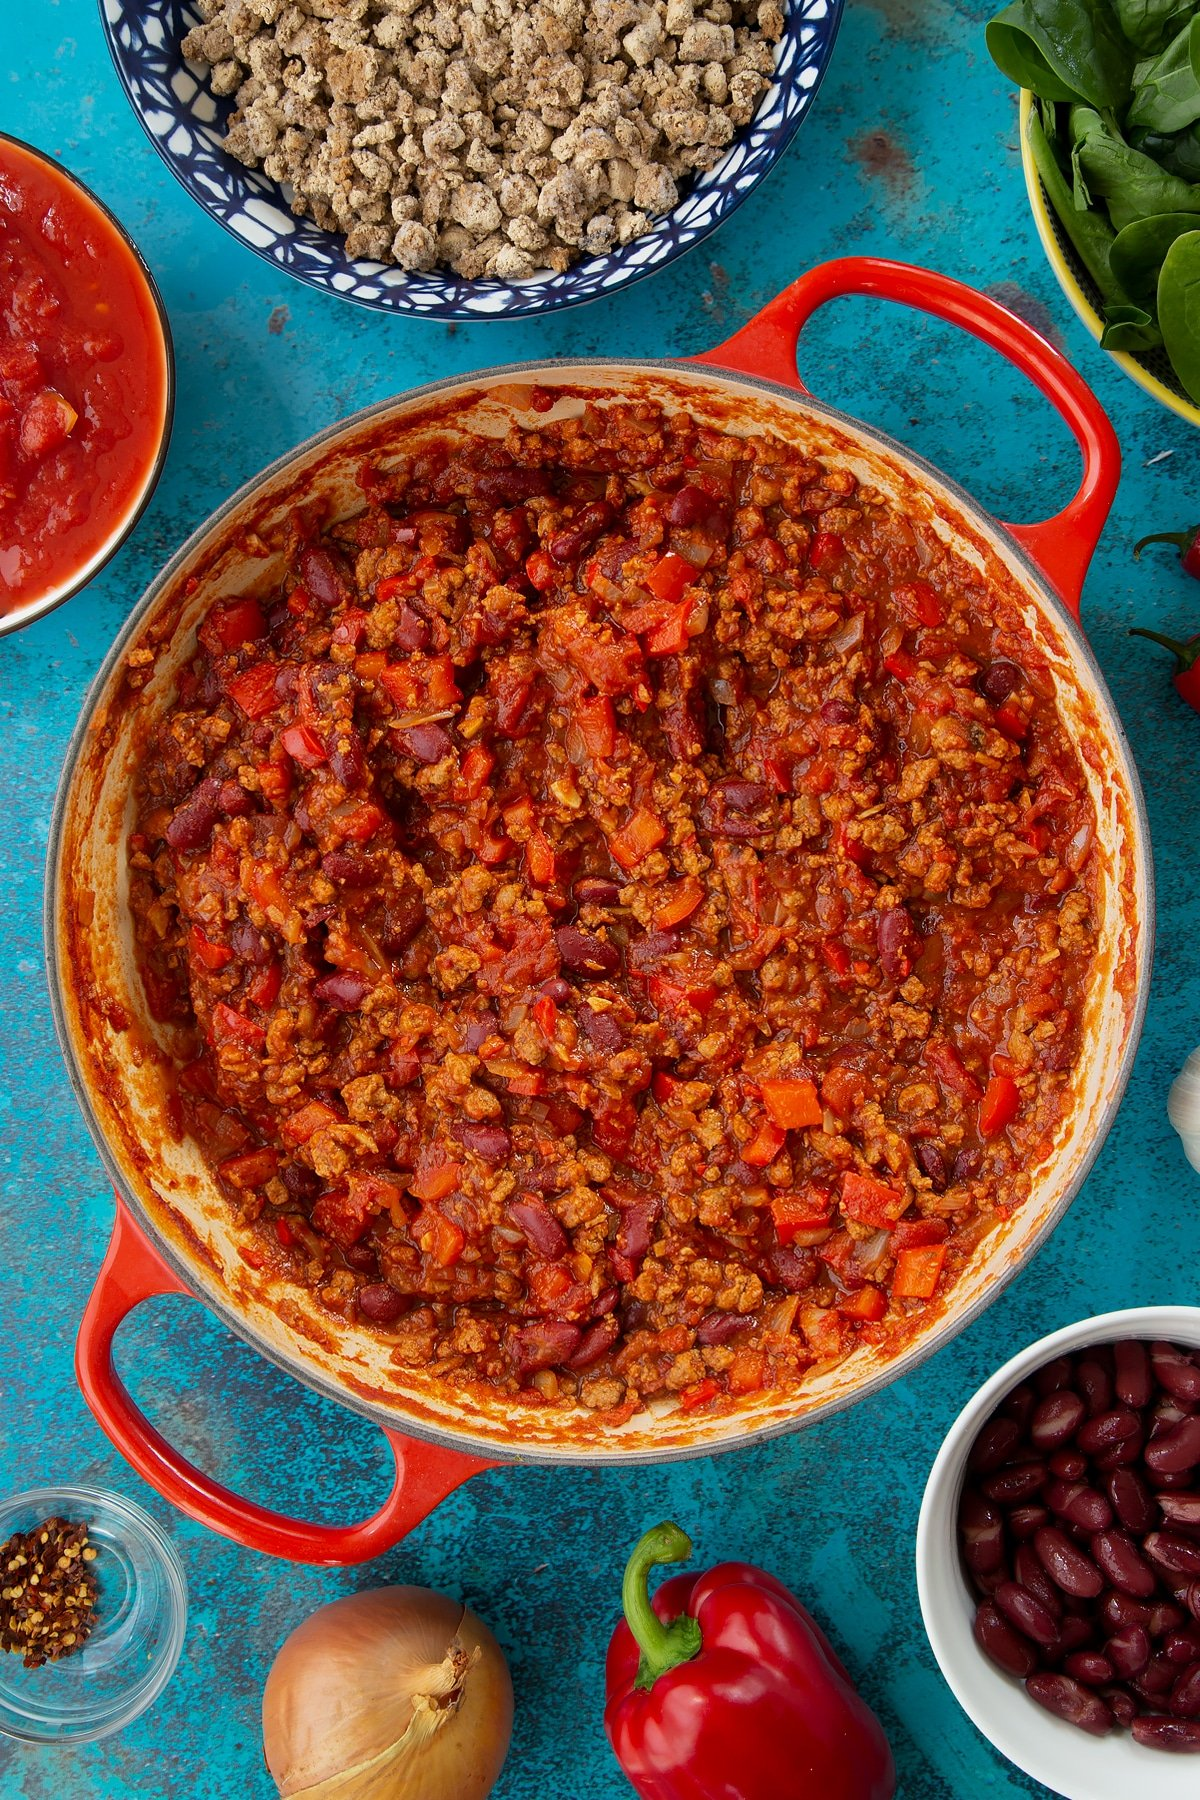 Vegetarian mince chilli in a pan, almost ready. Ingredients to make vegetarian mince chilli surround the pan.